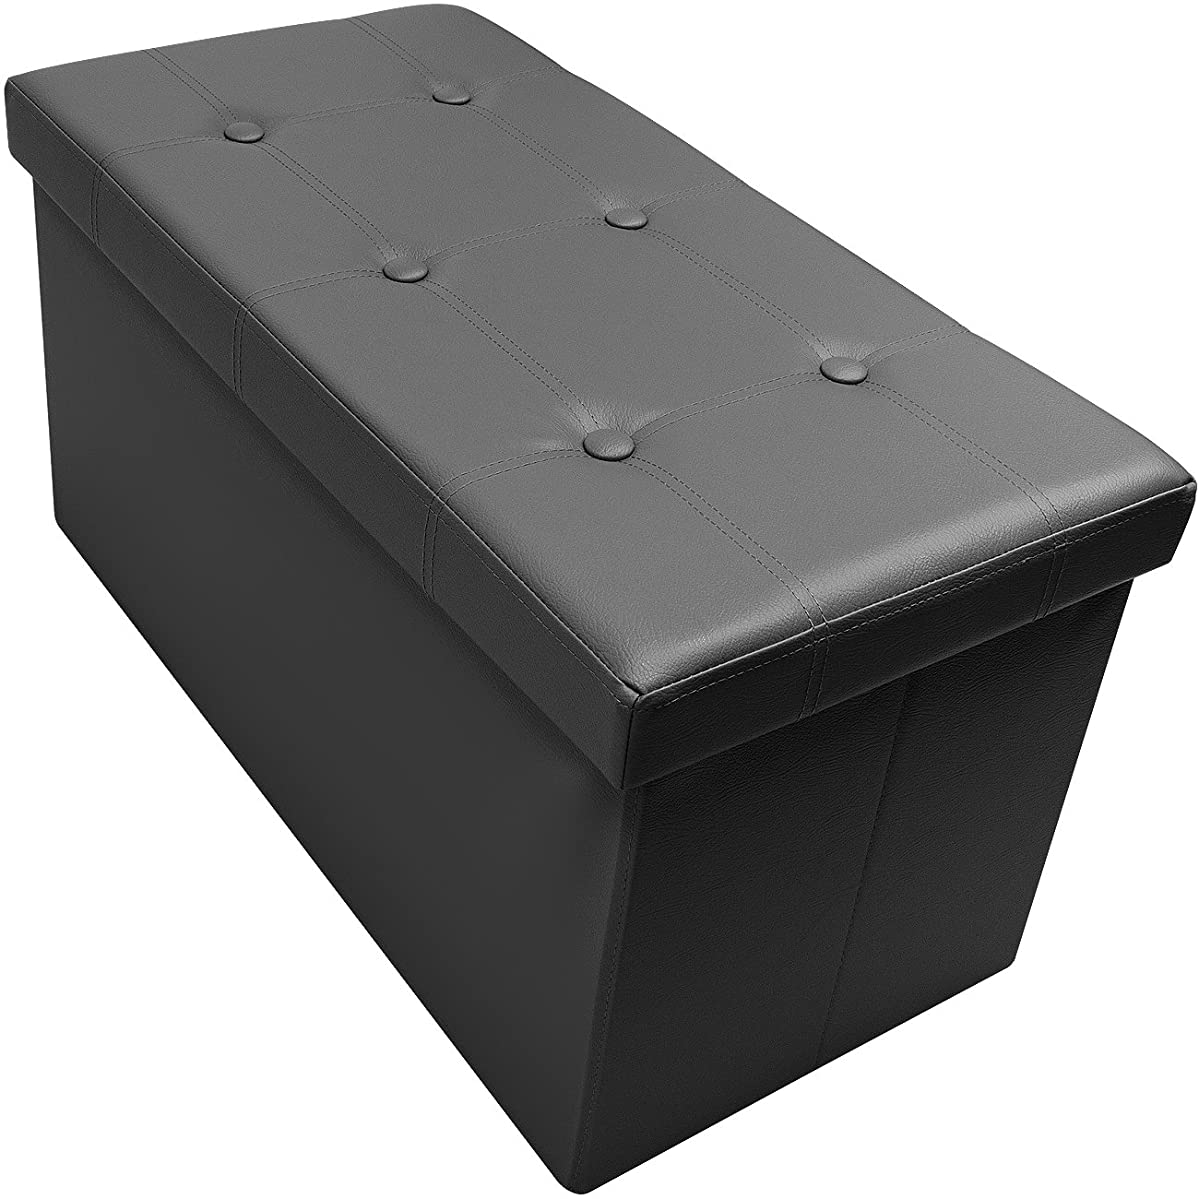 Sorbus Storage Bench Chest – Collapsible/Folding Bench Ottoman with Cover – Perfect Hope Chest, Pouffe Ottoman, Coffee Table, Seat, Foot Rest, and More – Contemporary Faux Leather (Black)